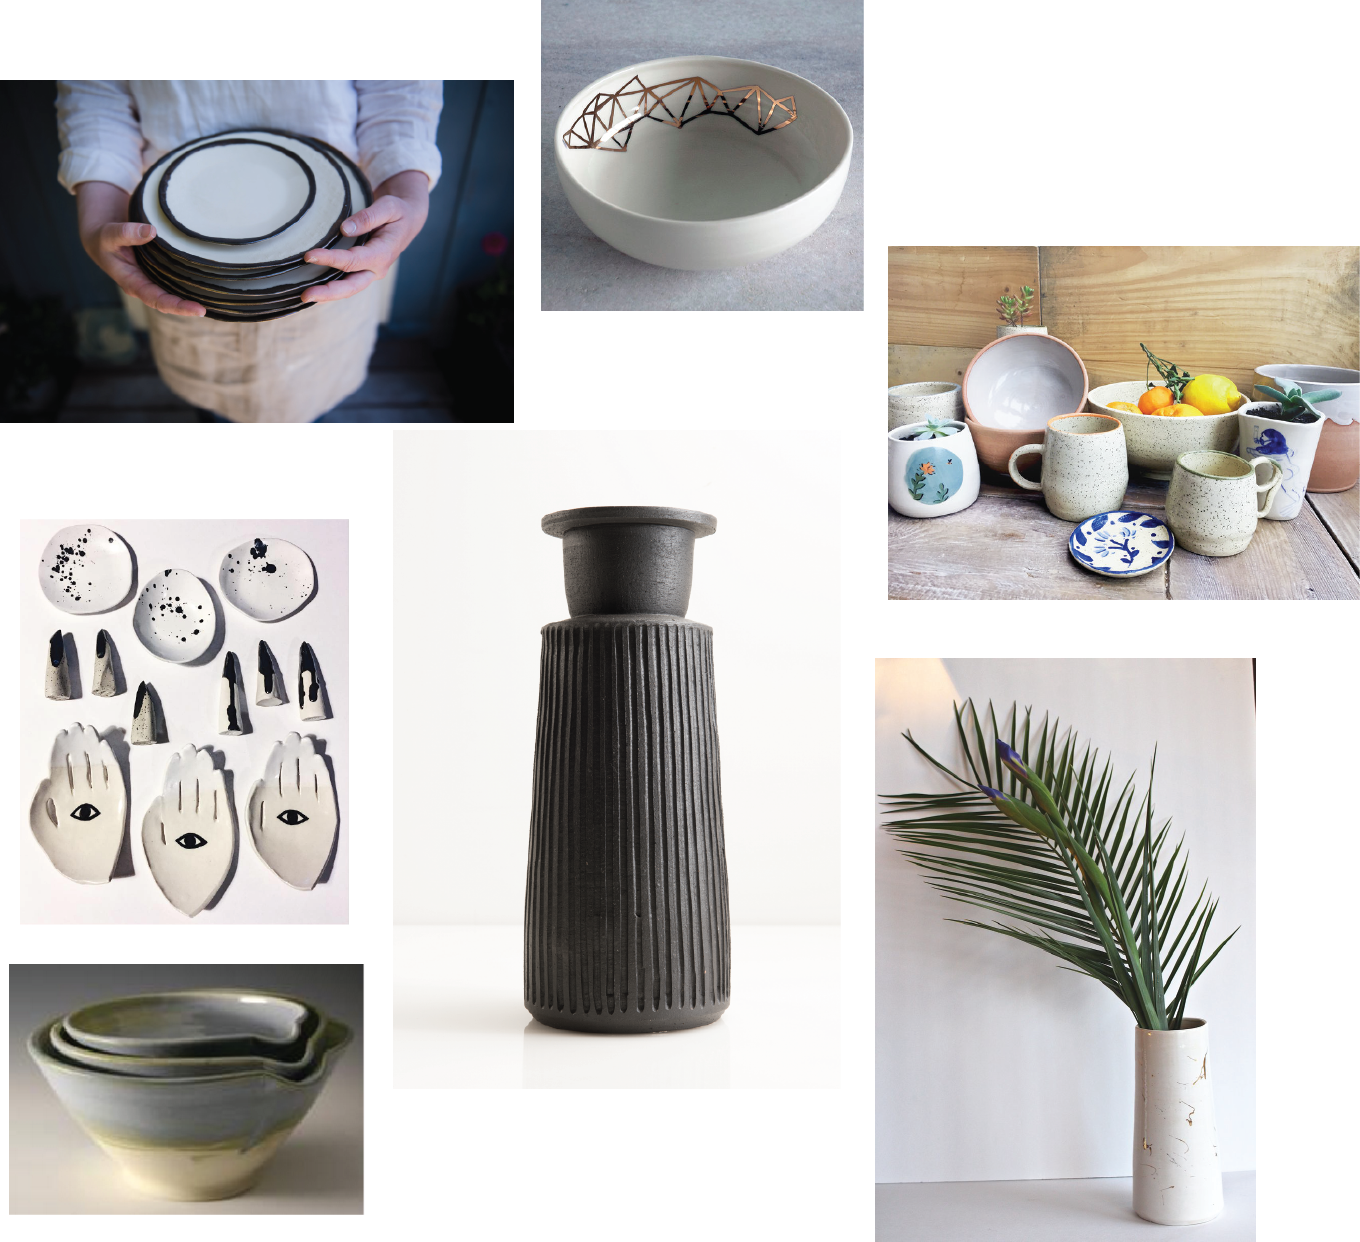 Clockwise L to R: Muddy Marvels, g ceramic &co., Piton Pottery, Three Corners Artisan, Yookyoung Yong, Emily Tolmie, le.lou.ula